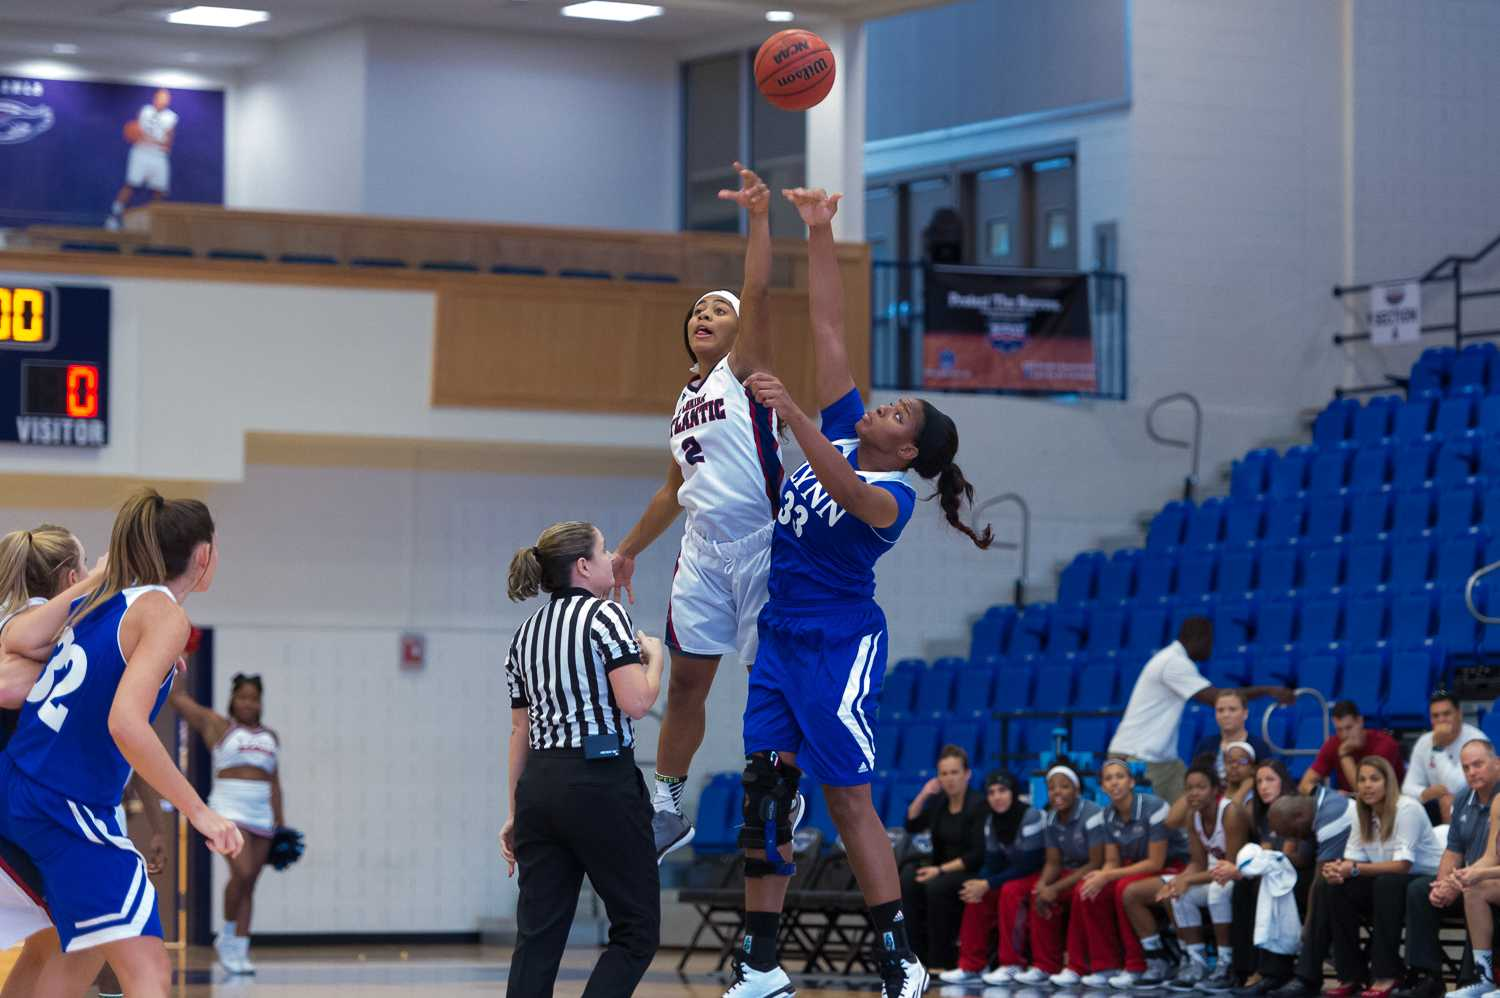 FAU's Shaneese Bailey and Lynn's Charla Nelson-James tip off to begin the exhibition game on Sunday, Nov. 9.